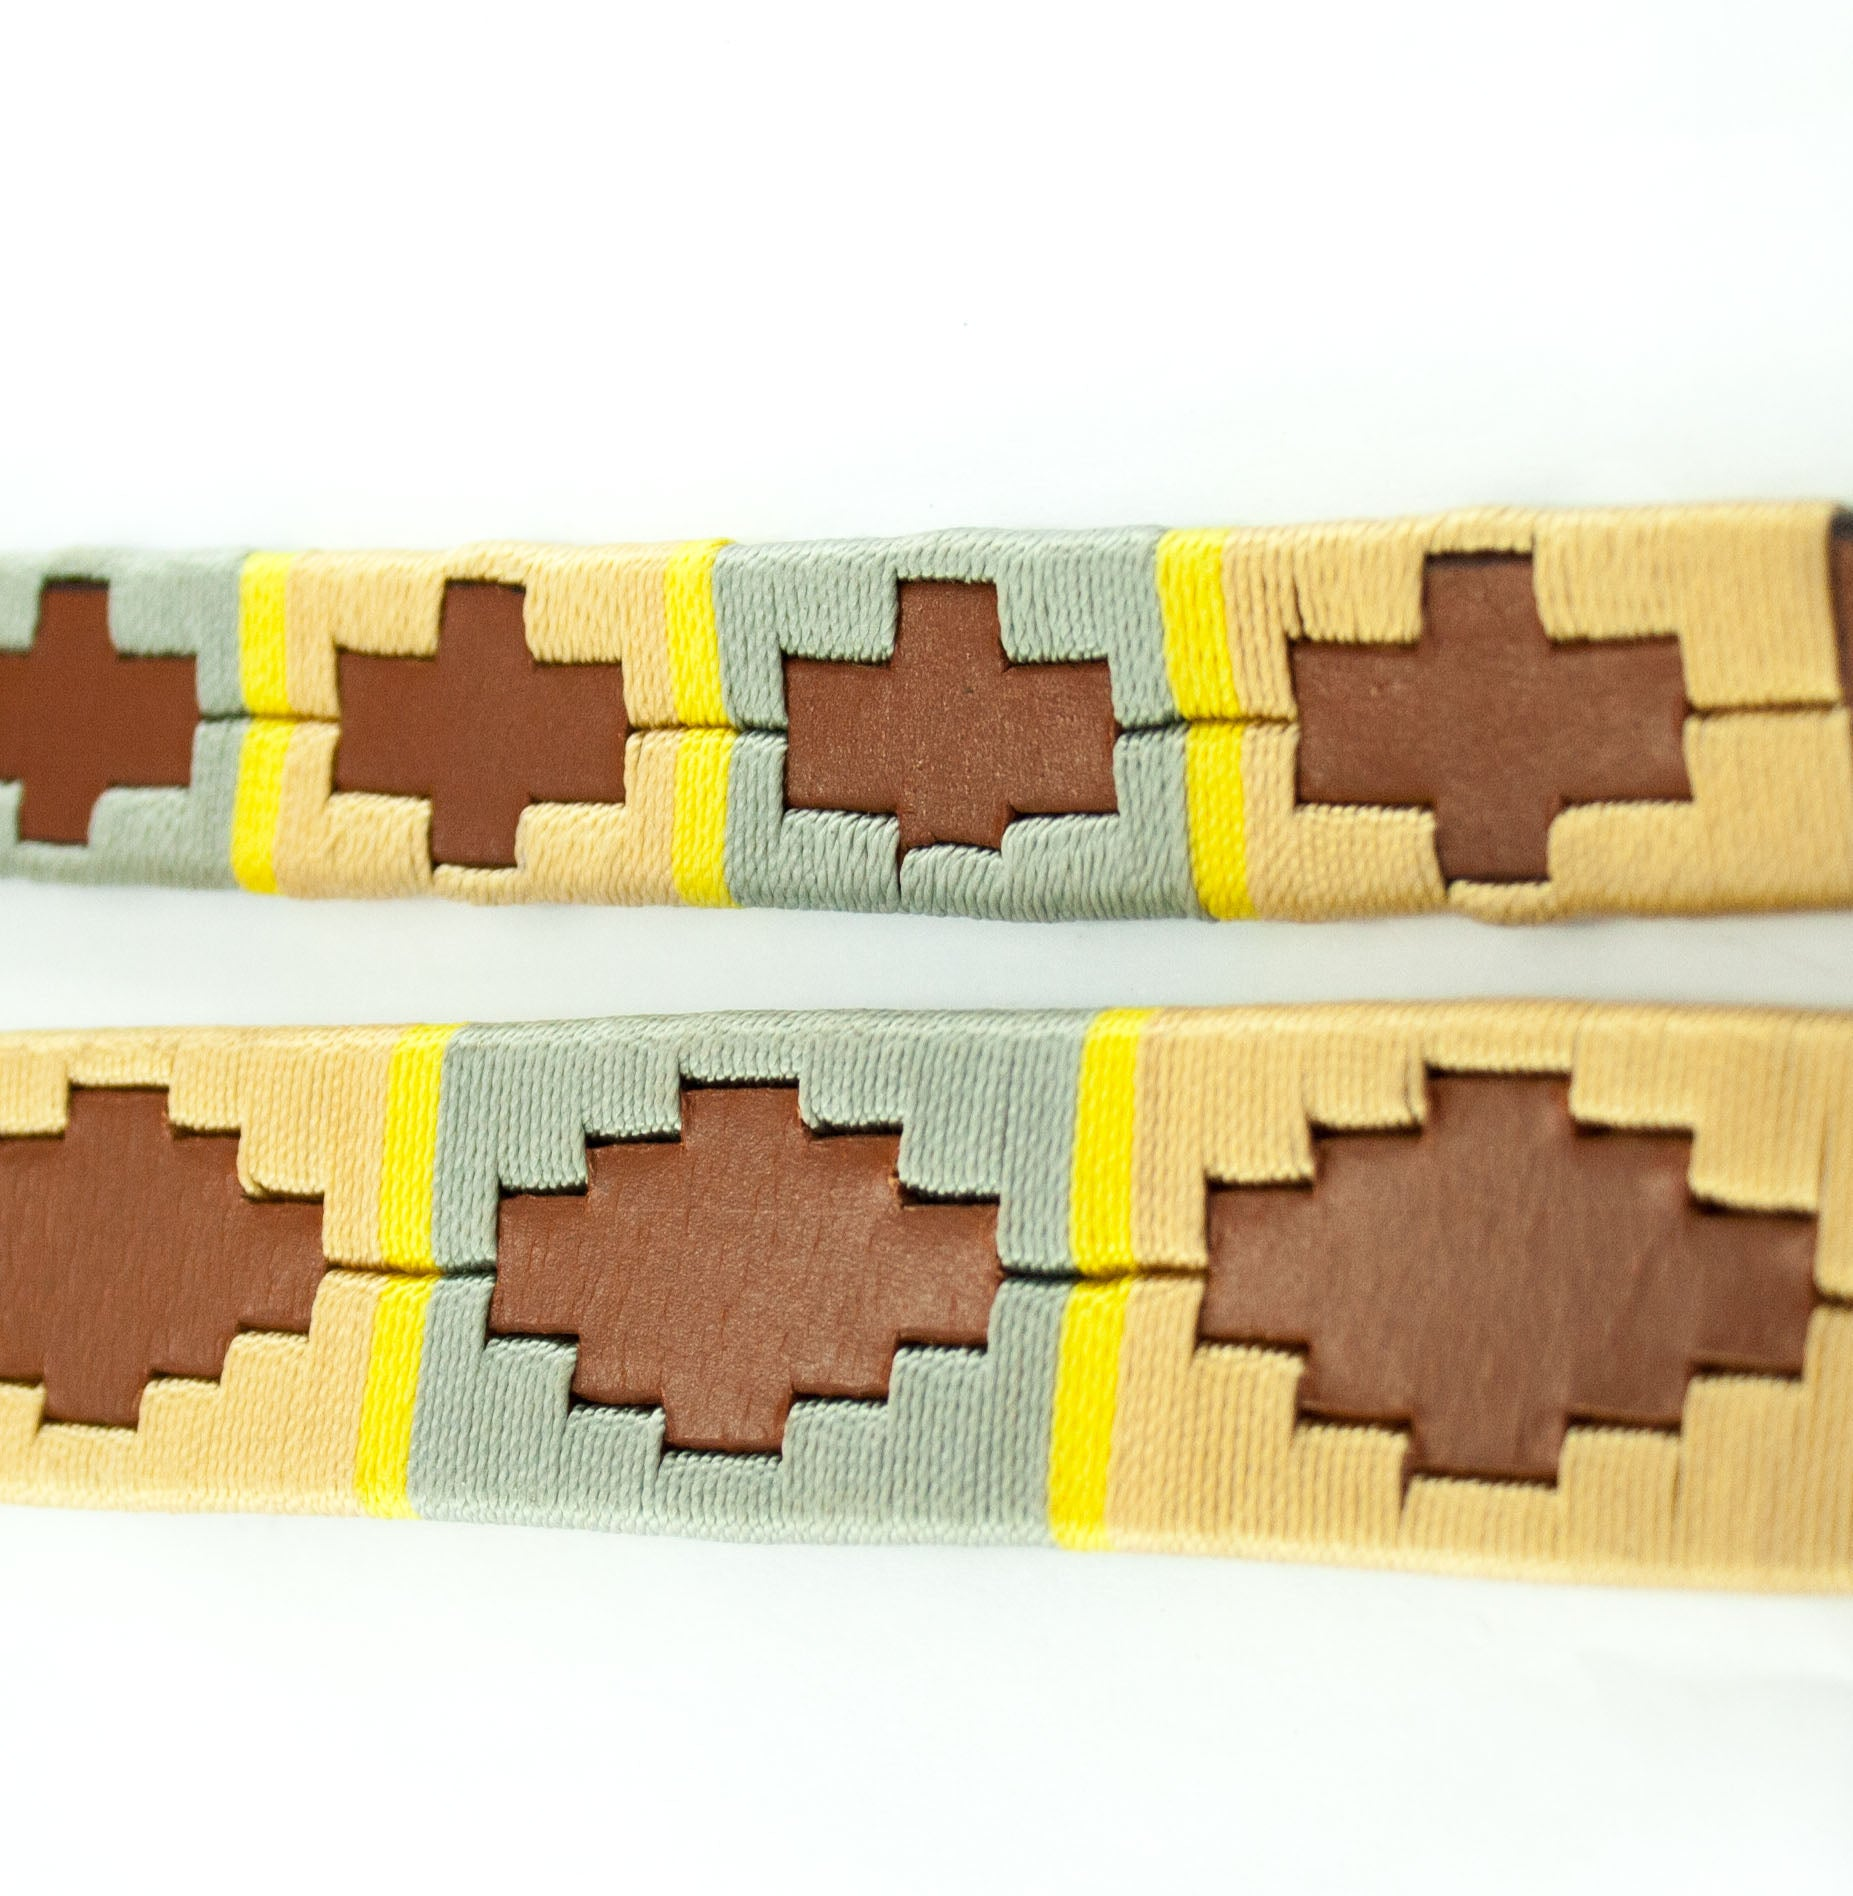 Leather 'GAUCHO-POLO' Style Dog Collar Beige & Ochre